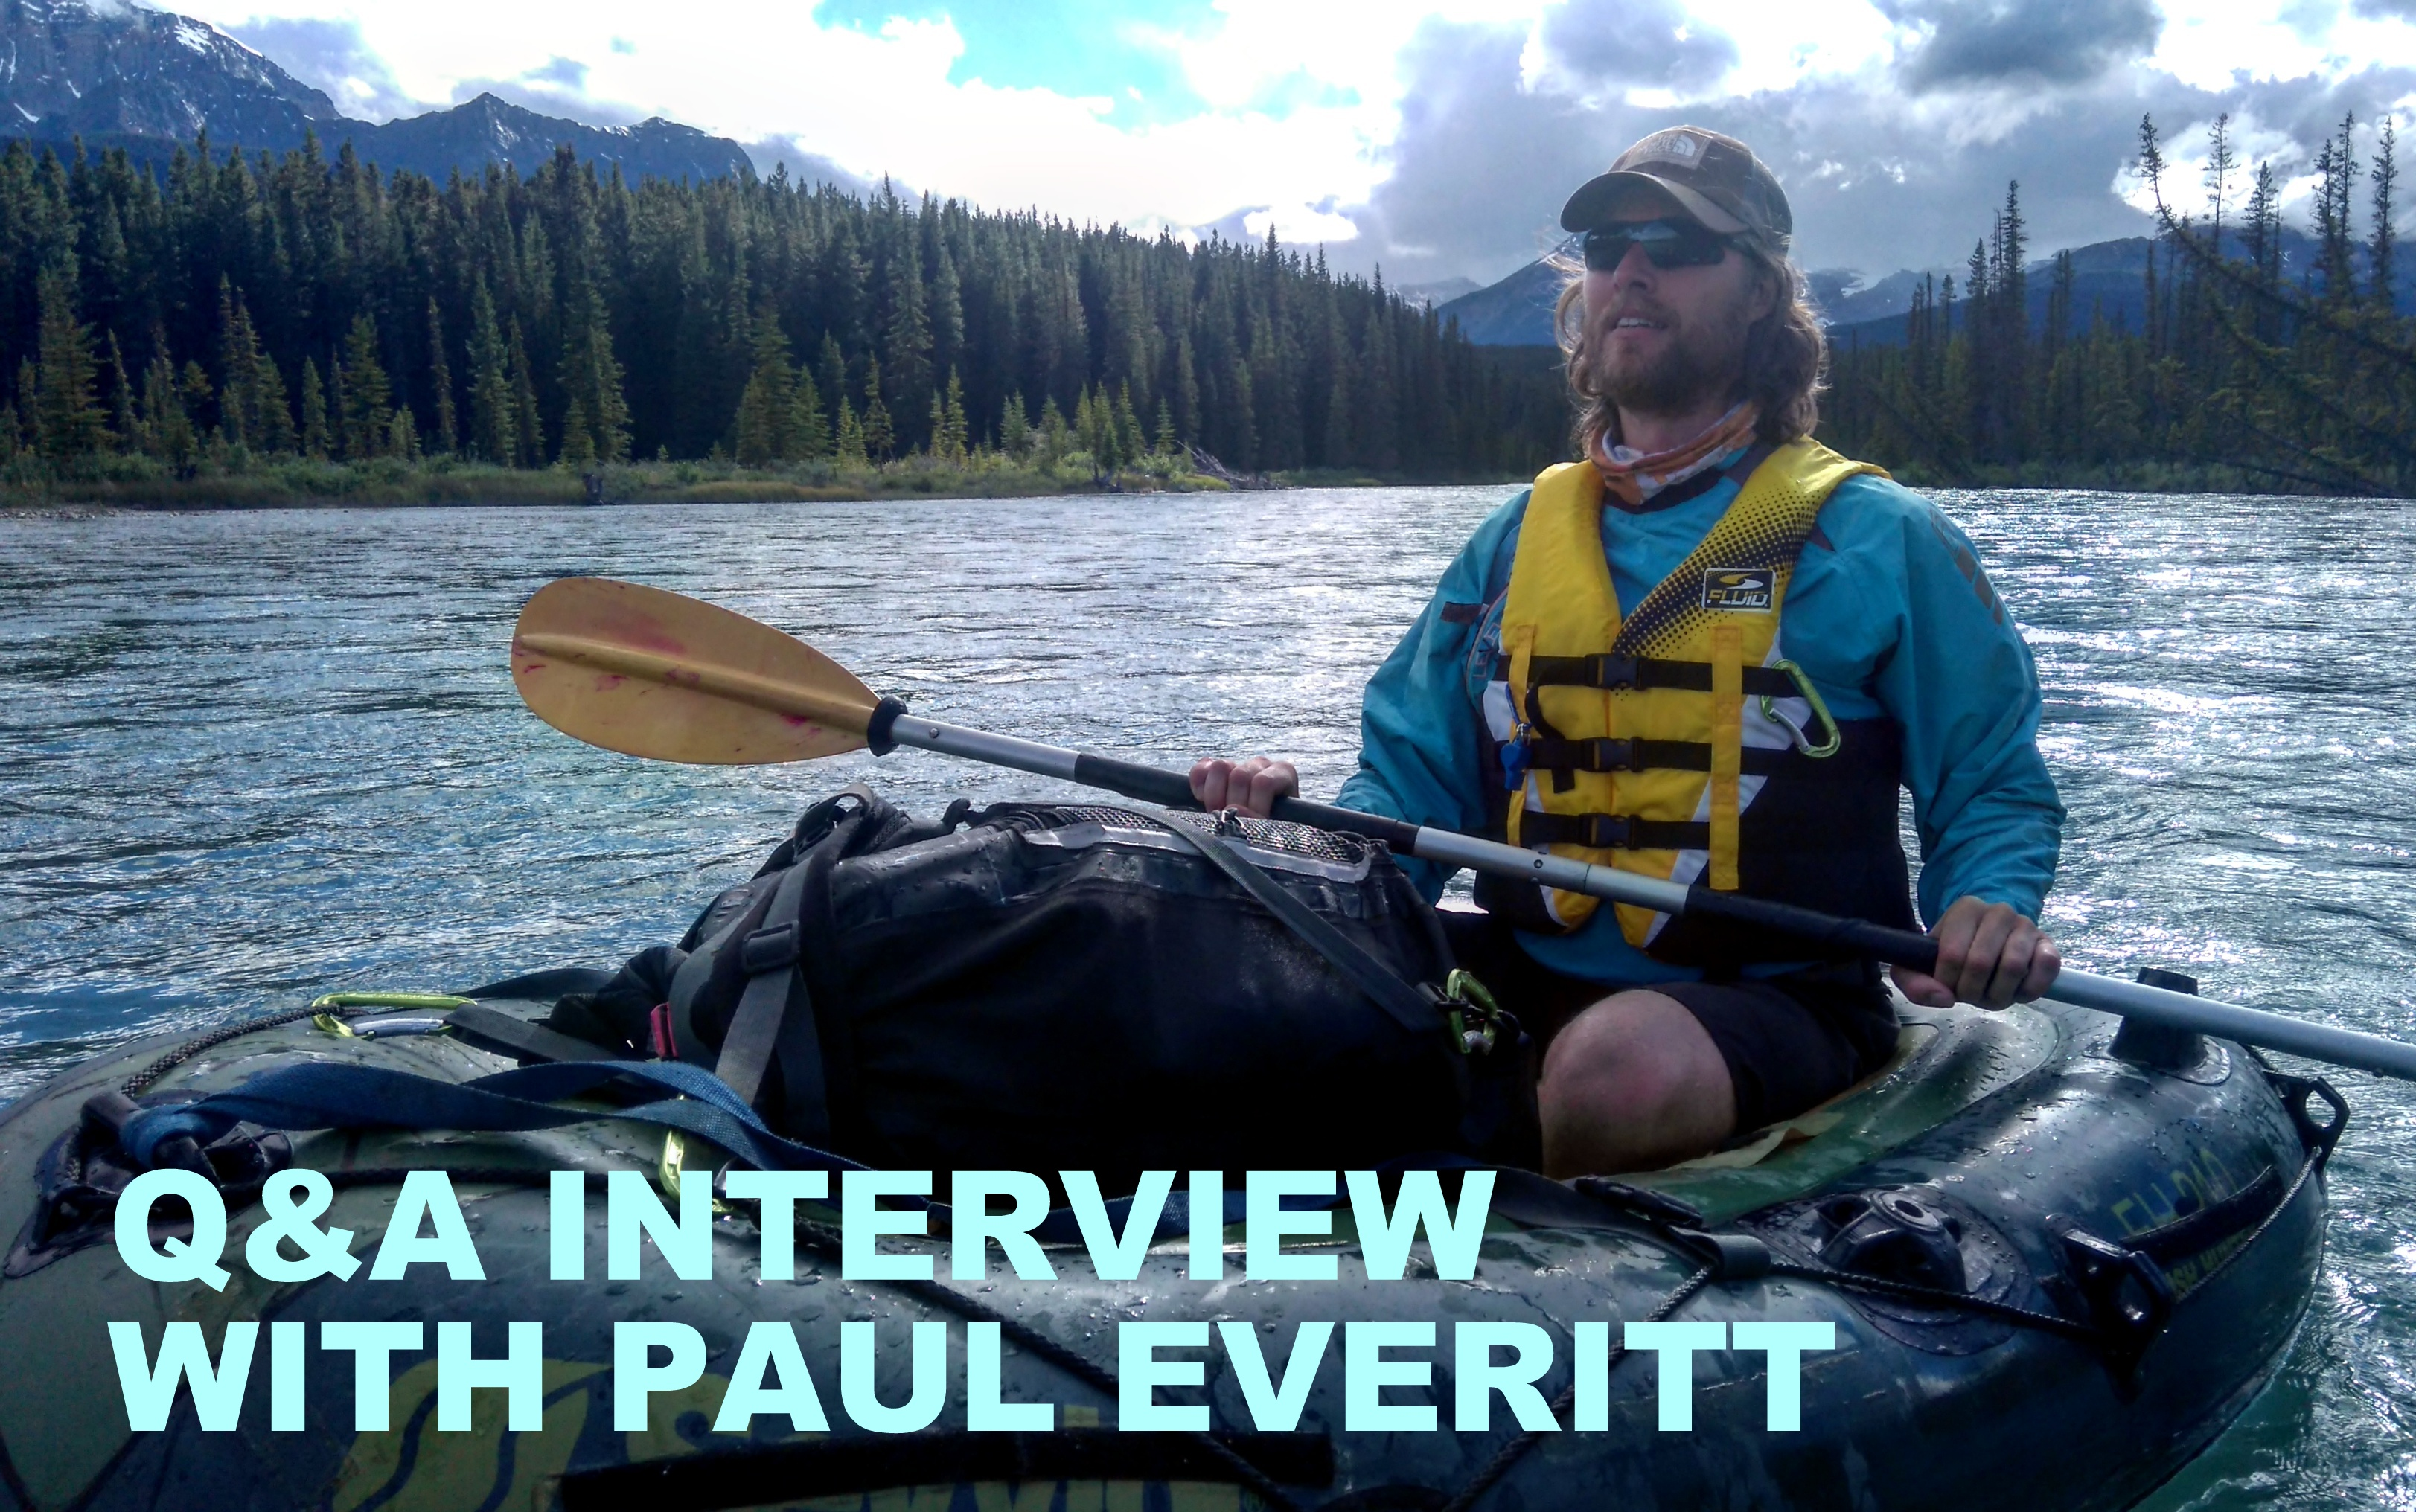 Q&A interview with Paul Everitt